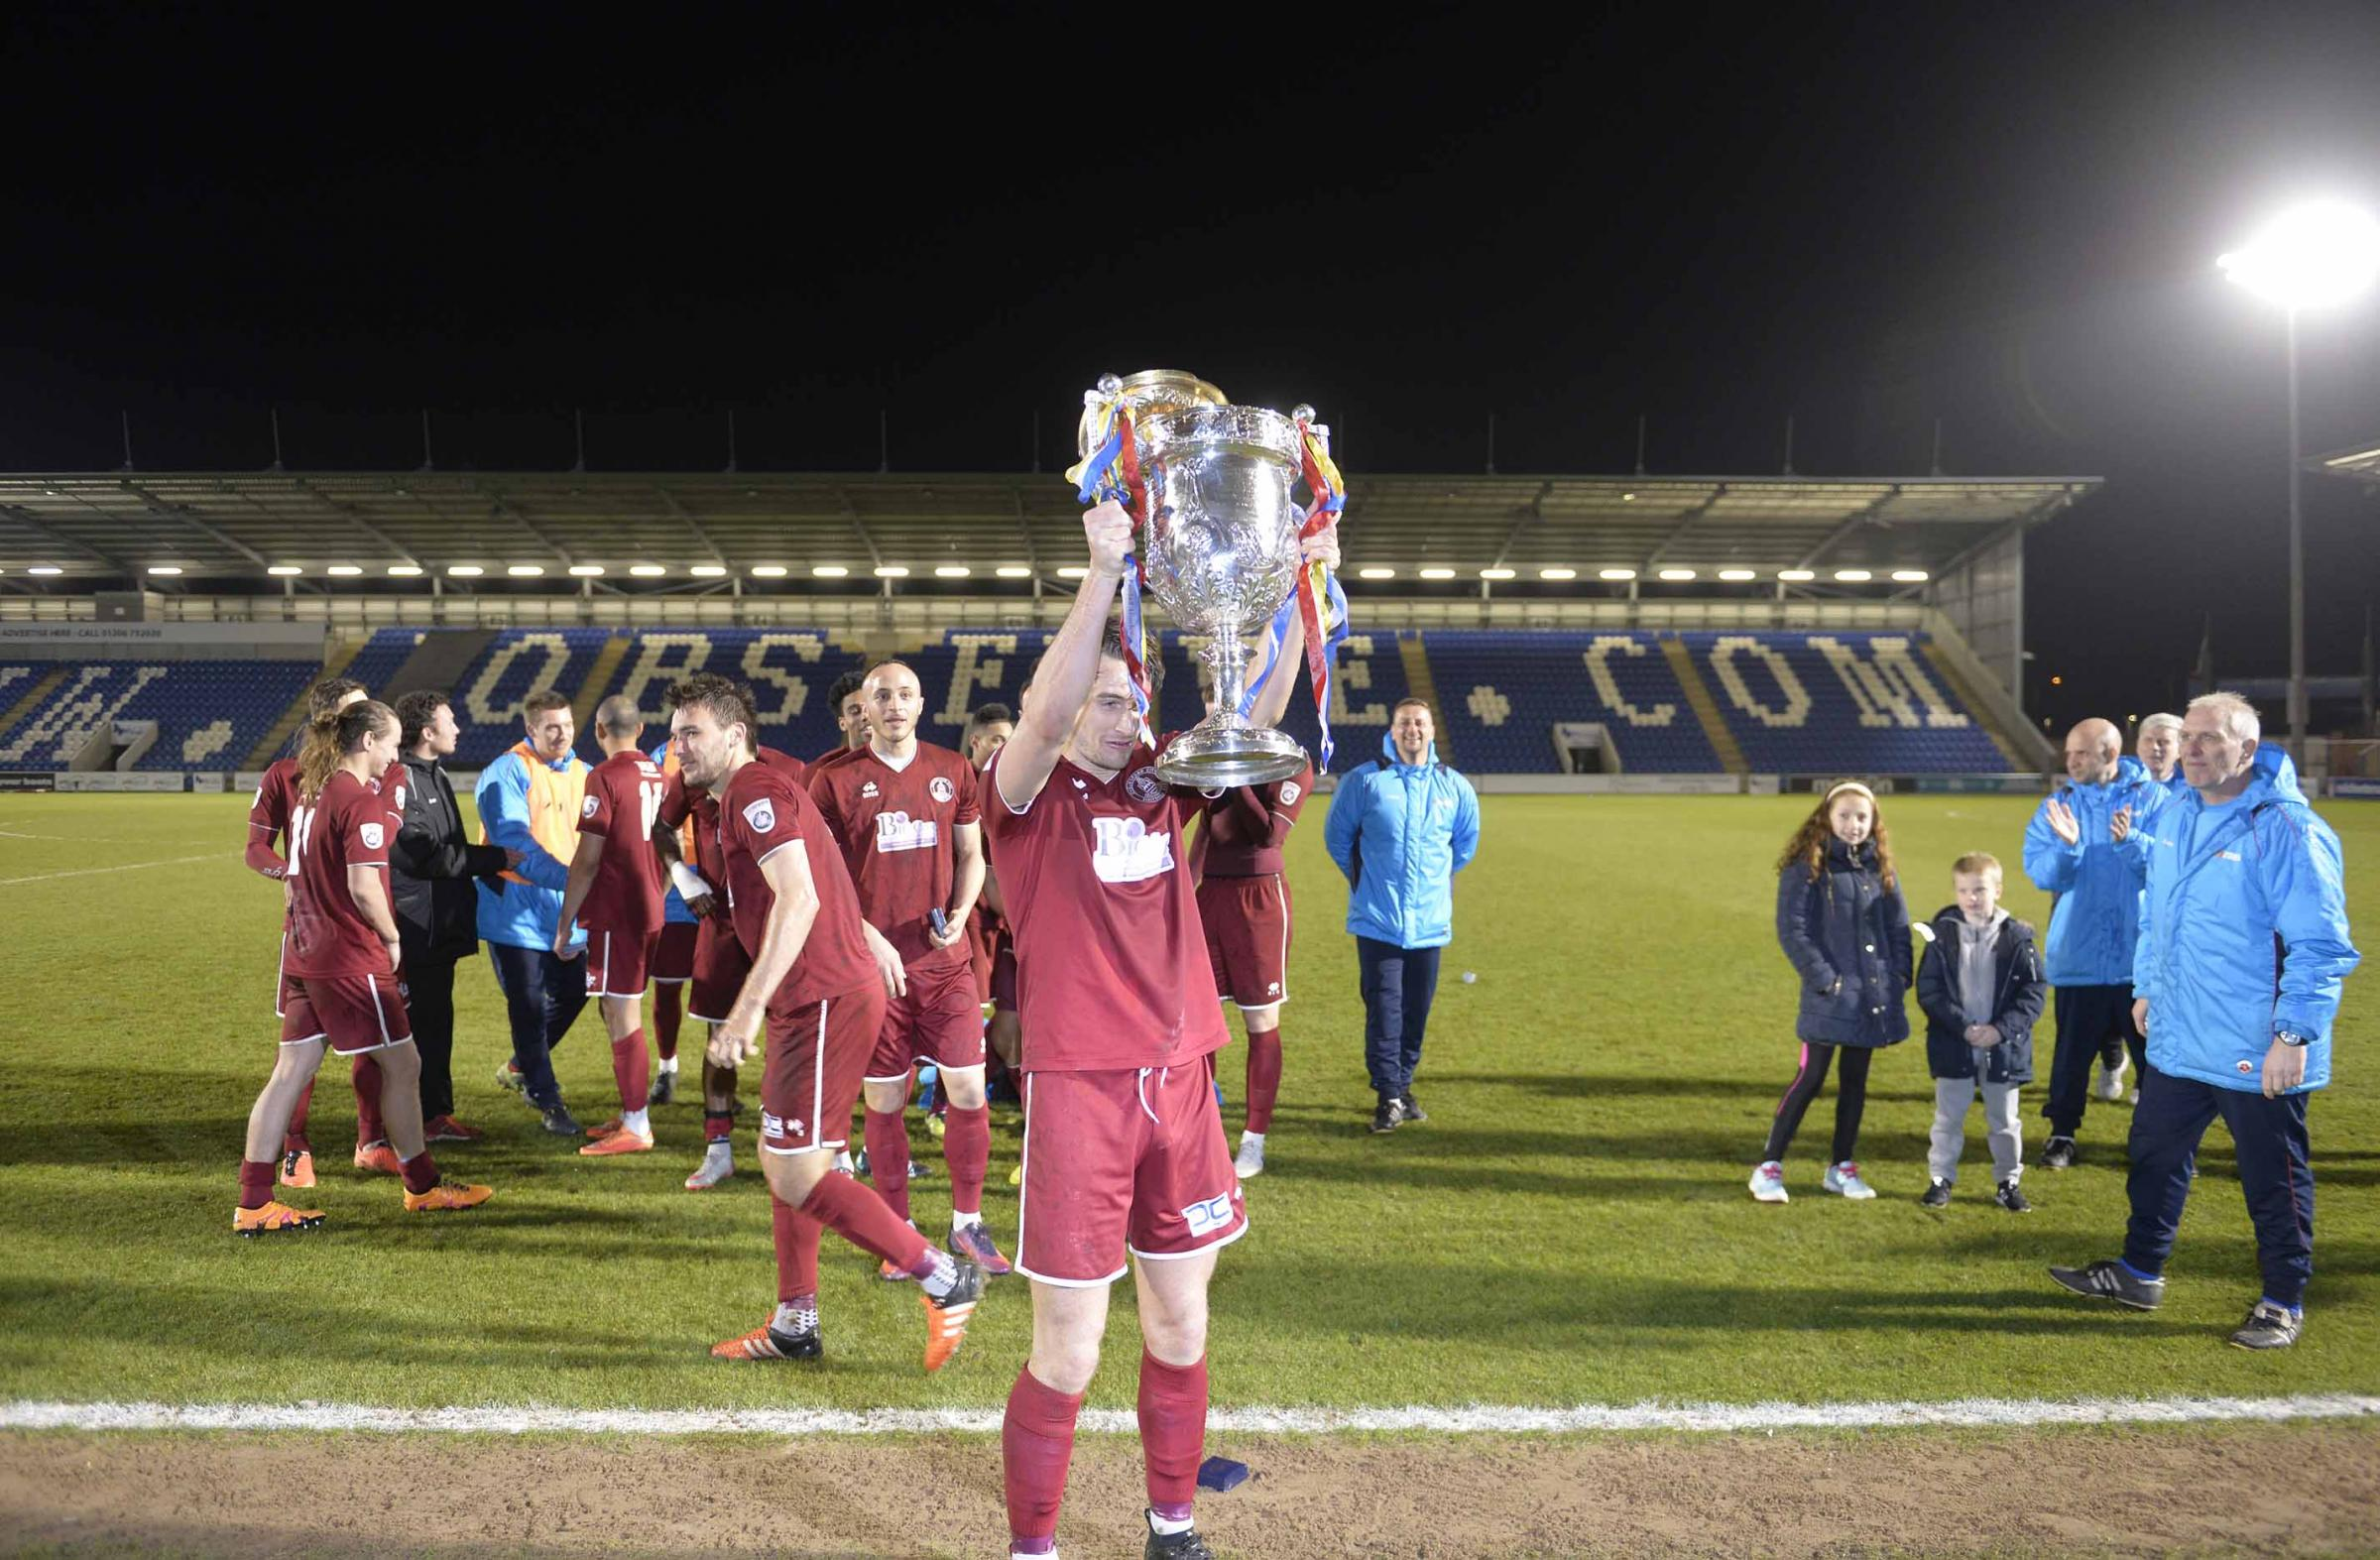 Winners - Chelmsford City lifted the cup last season